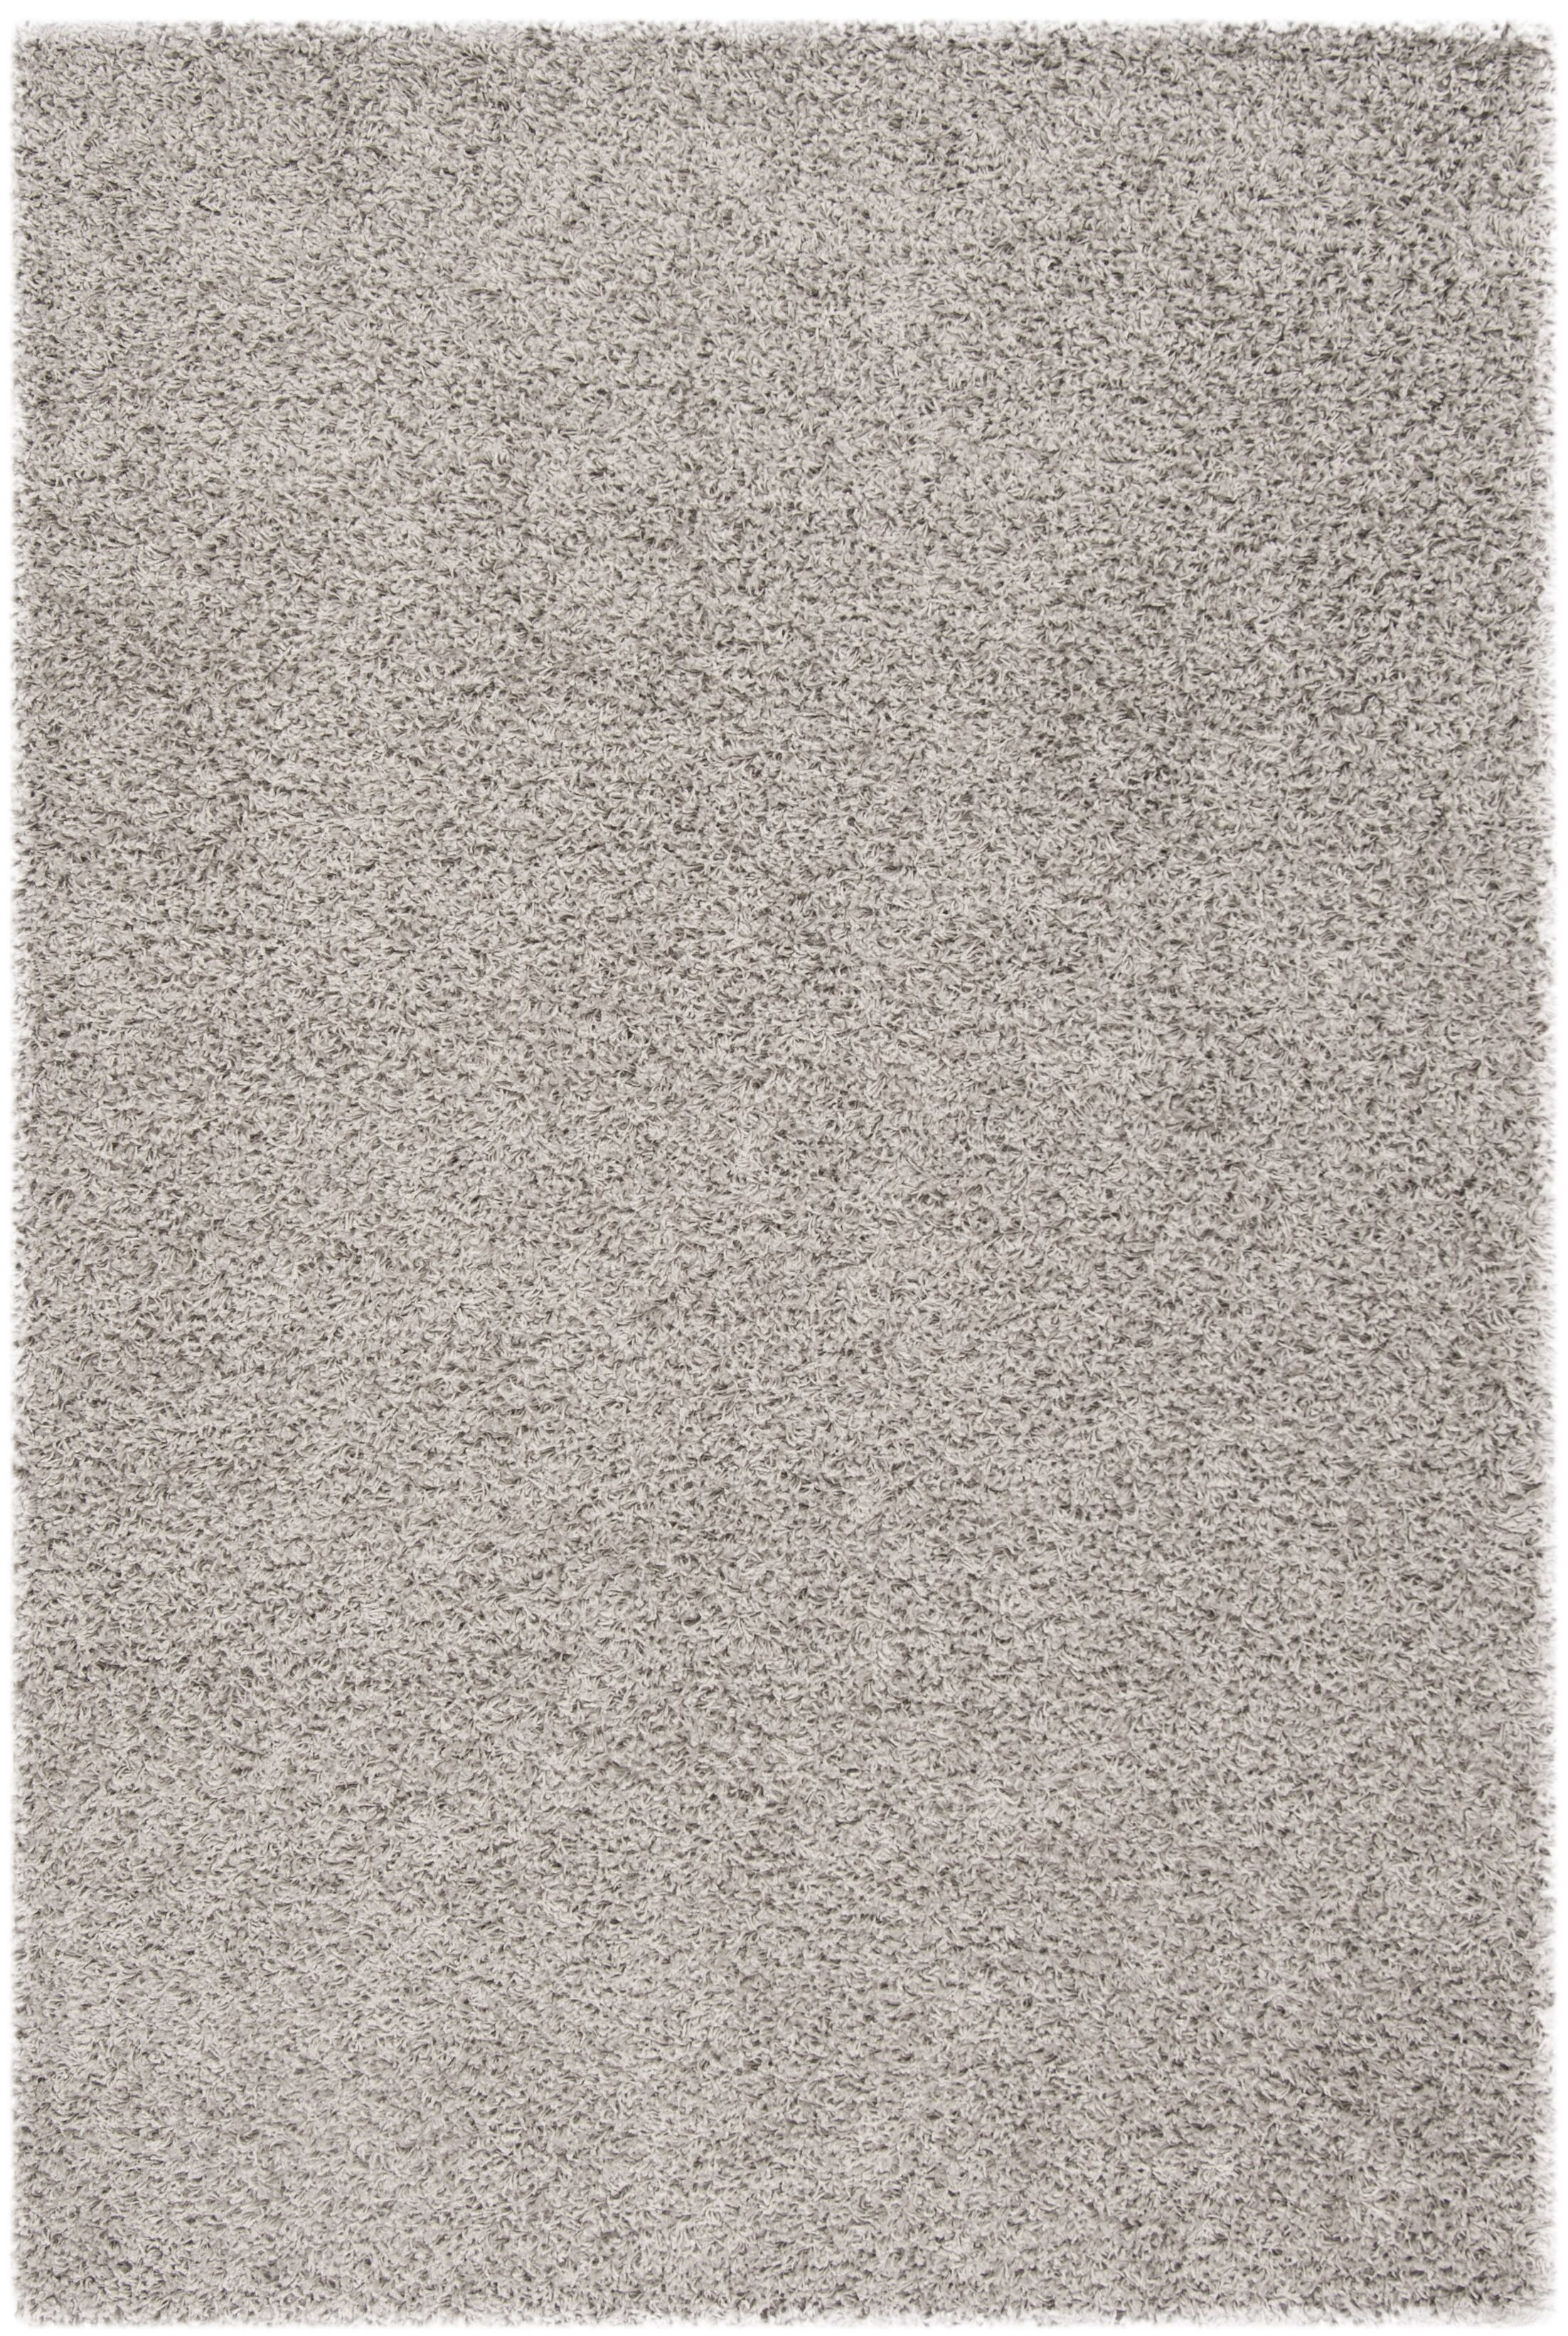 Fornax Shag Silver Area Rug Rug Size: Rectangle 9' x 12'